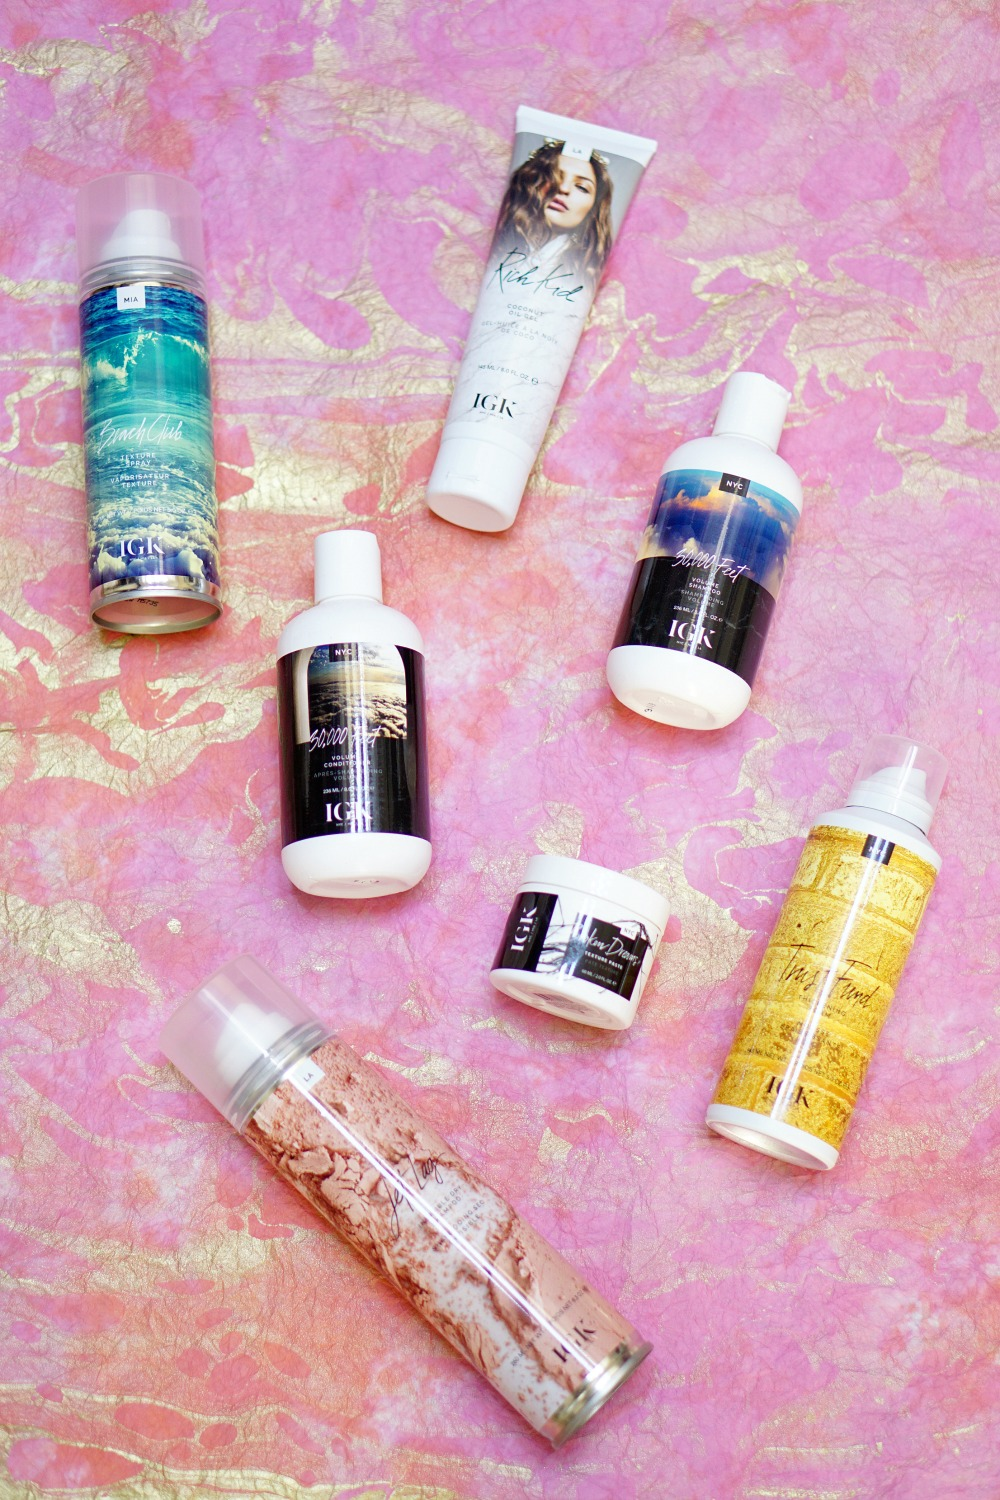 igk-hair-products-review